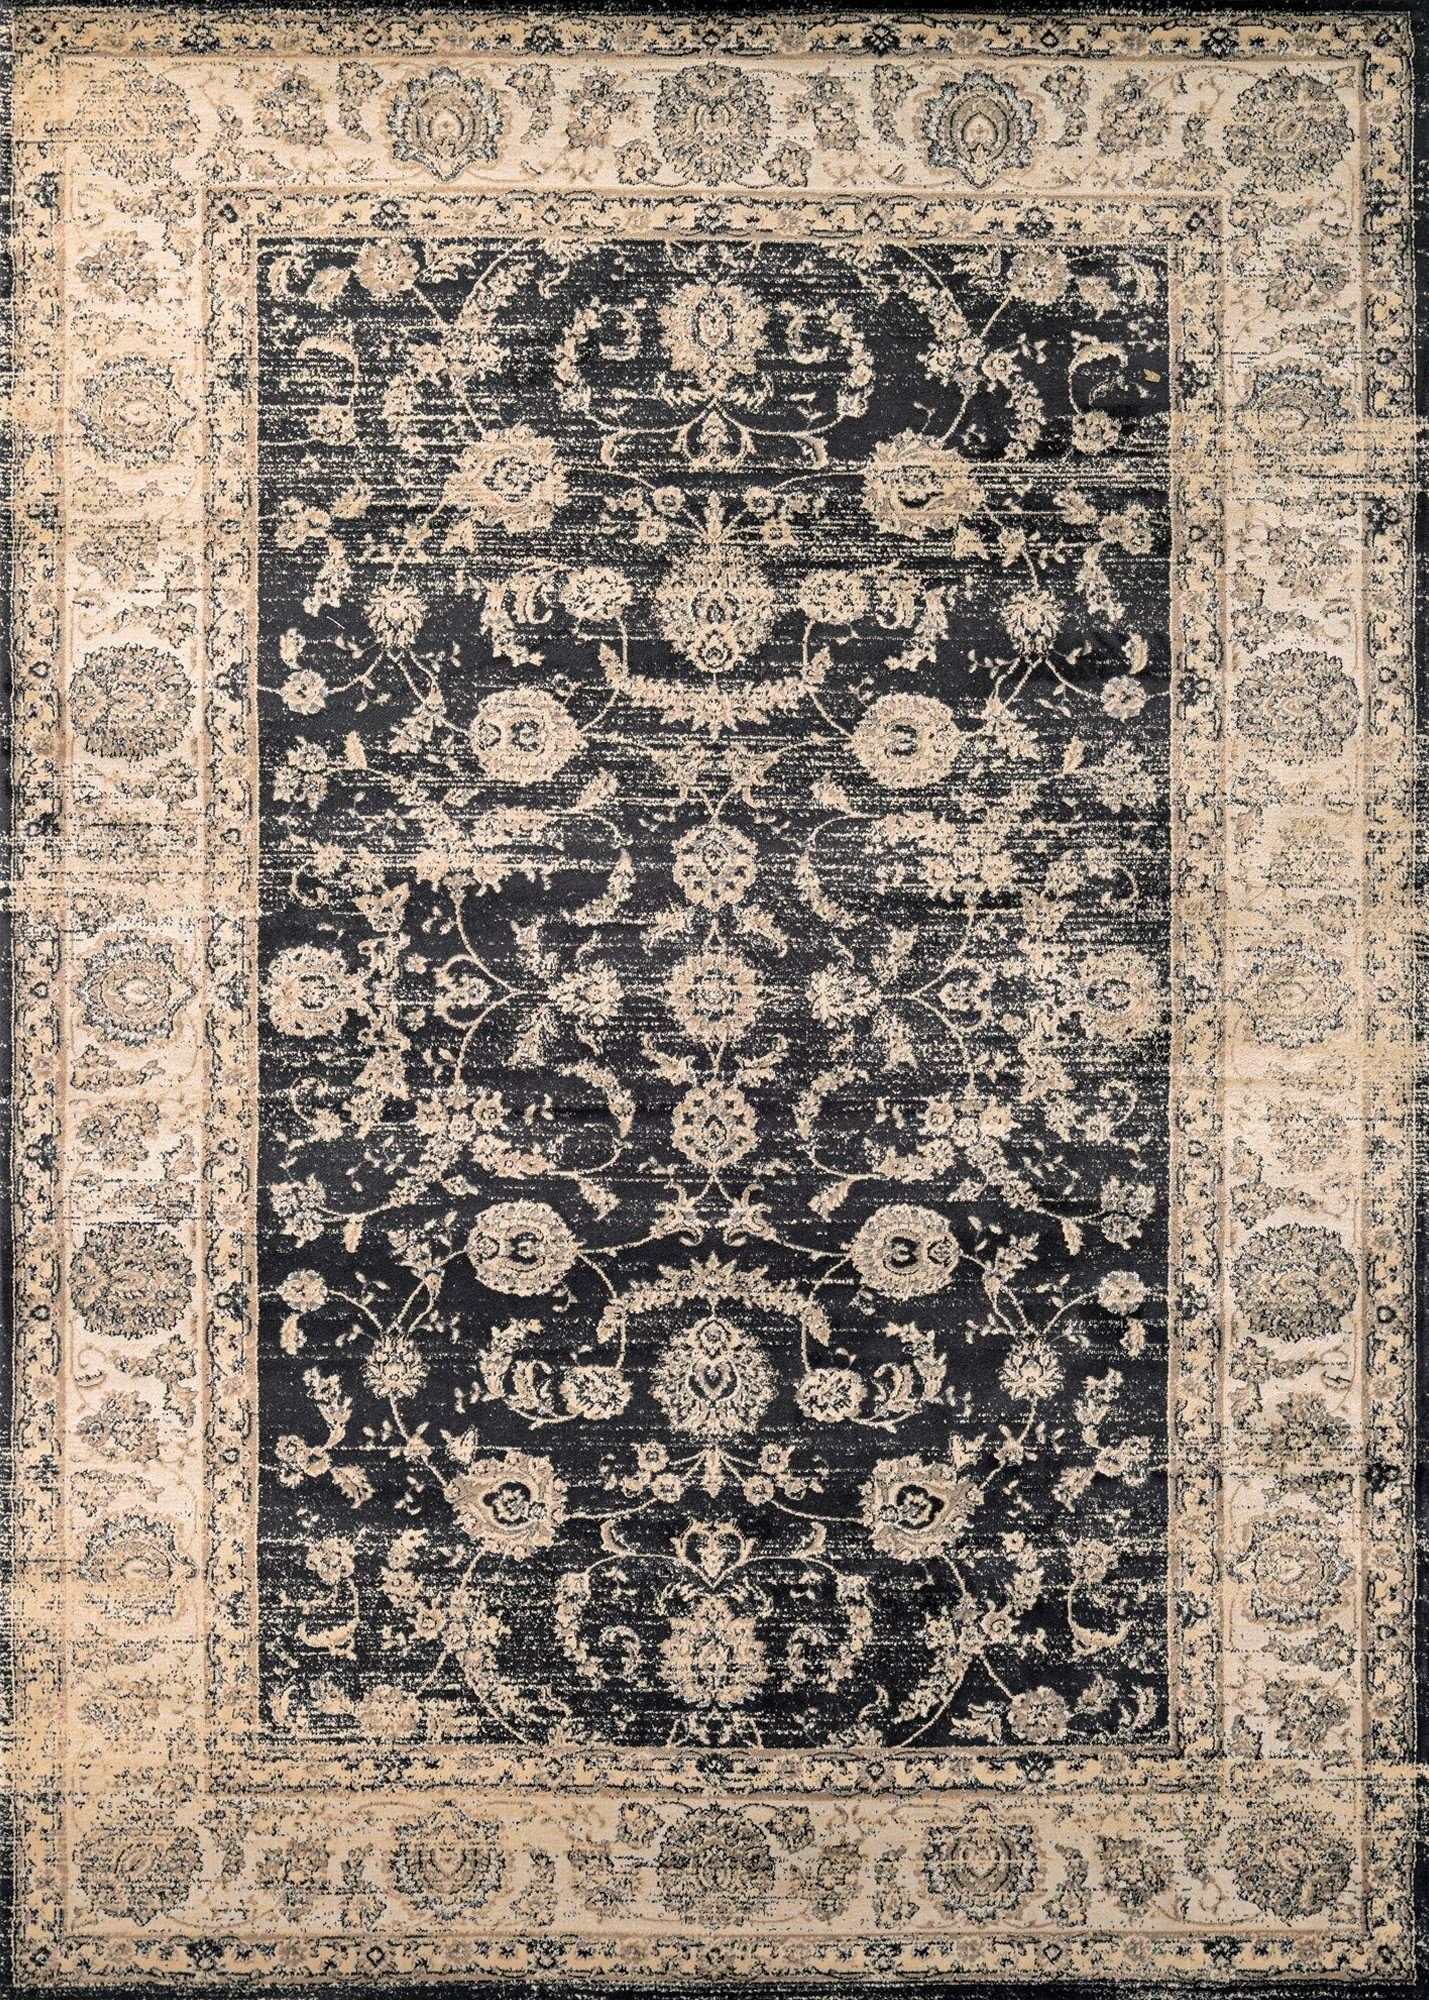 Zahara Floral Emblem Vintage Inspired Area Rugs-Area Rugs-Rug Shop and More